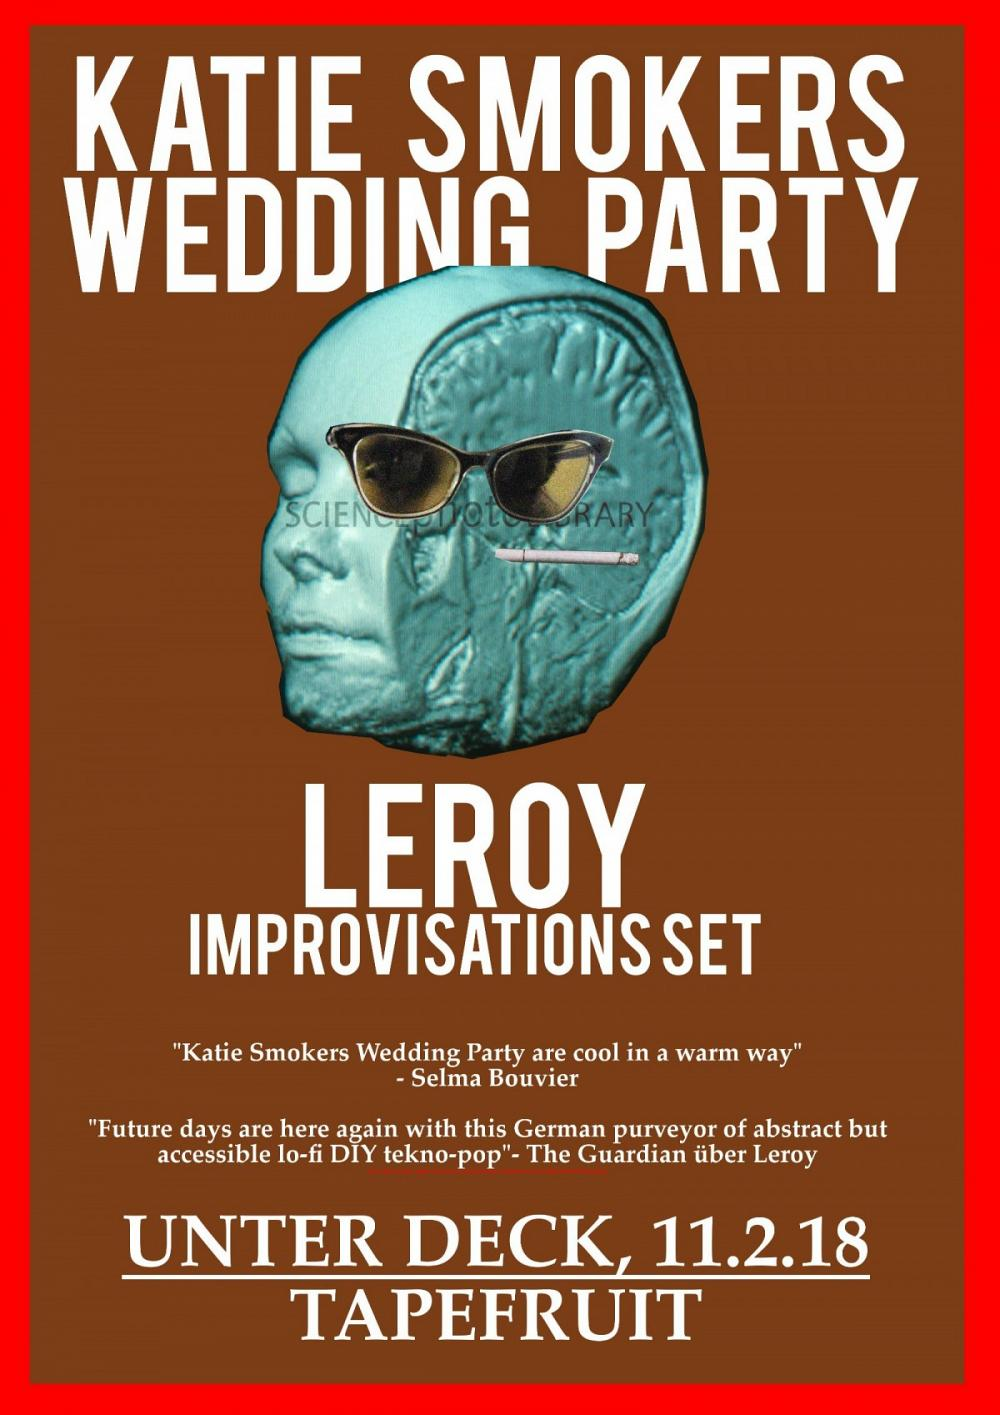 Tapefruit Konzert: Katie Smokers Wedding Party + LeRoy Impro feat. Markus Acher | 11.02.2018 @ Unter Deck